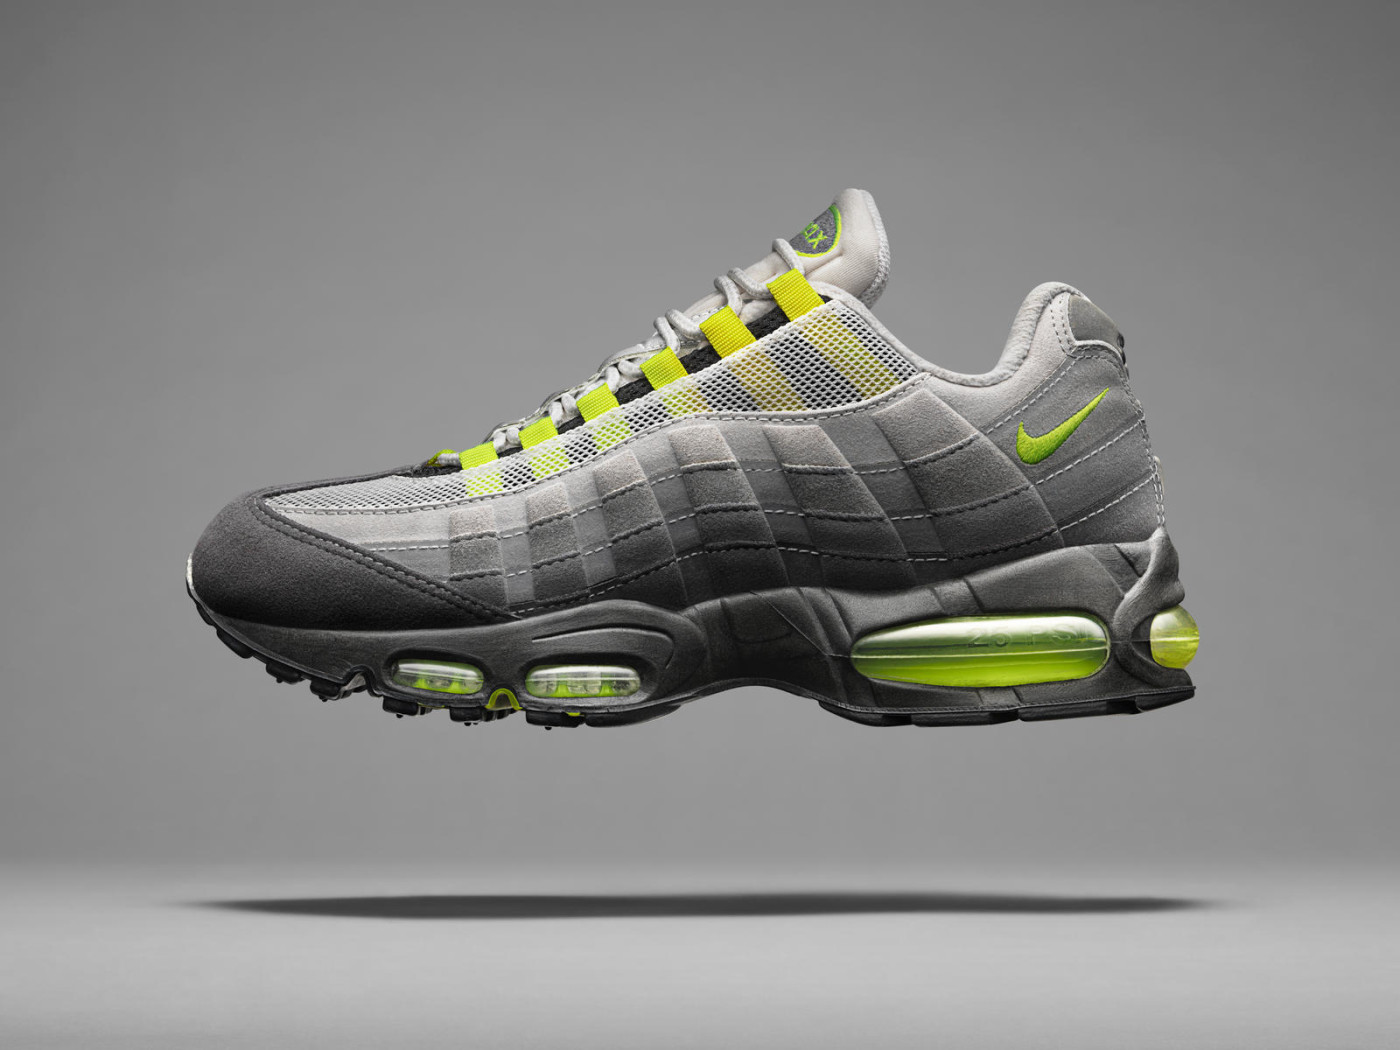 presidente empieza la acción Soviético  Nike Air Max 95: 20 Things You Didn't Know About the Sneaker | Complex